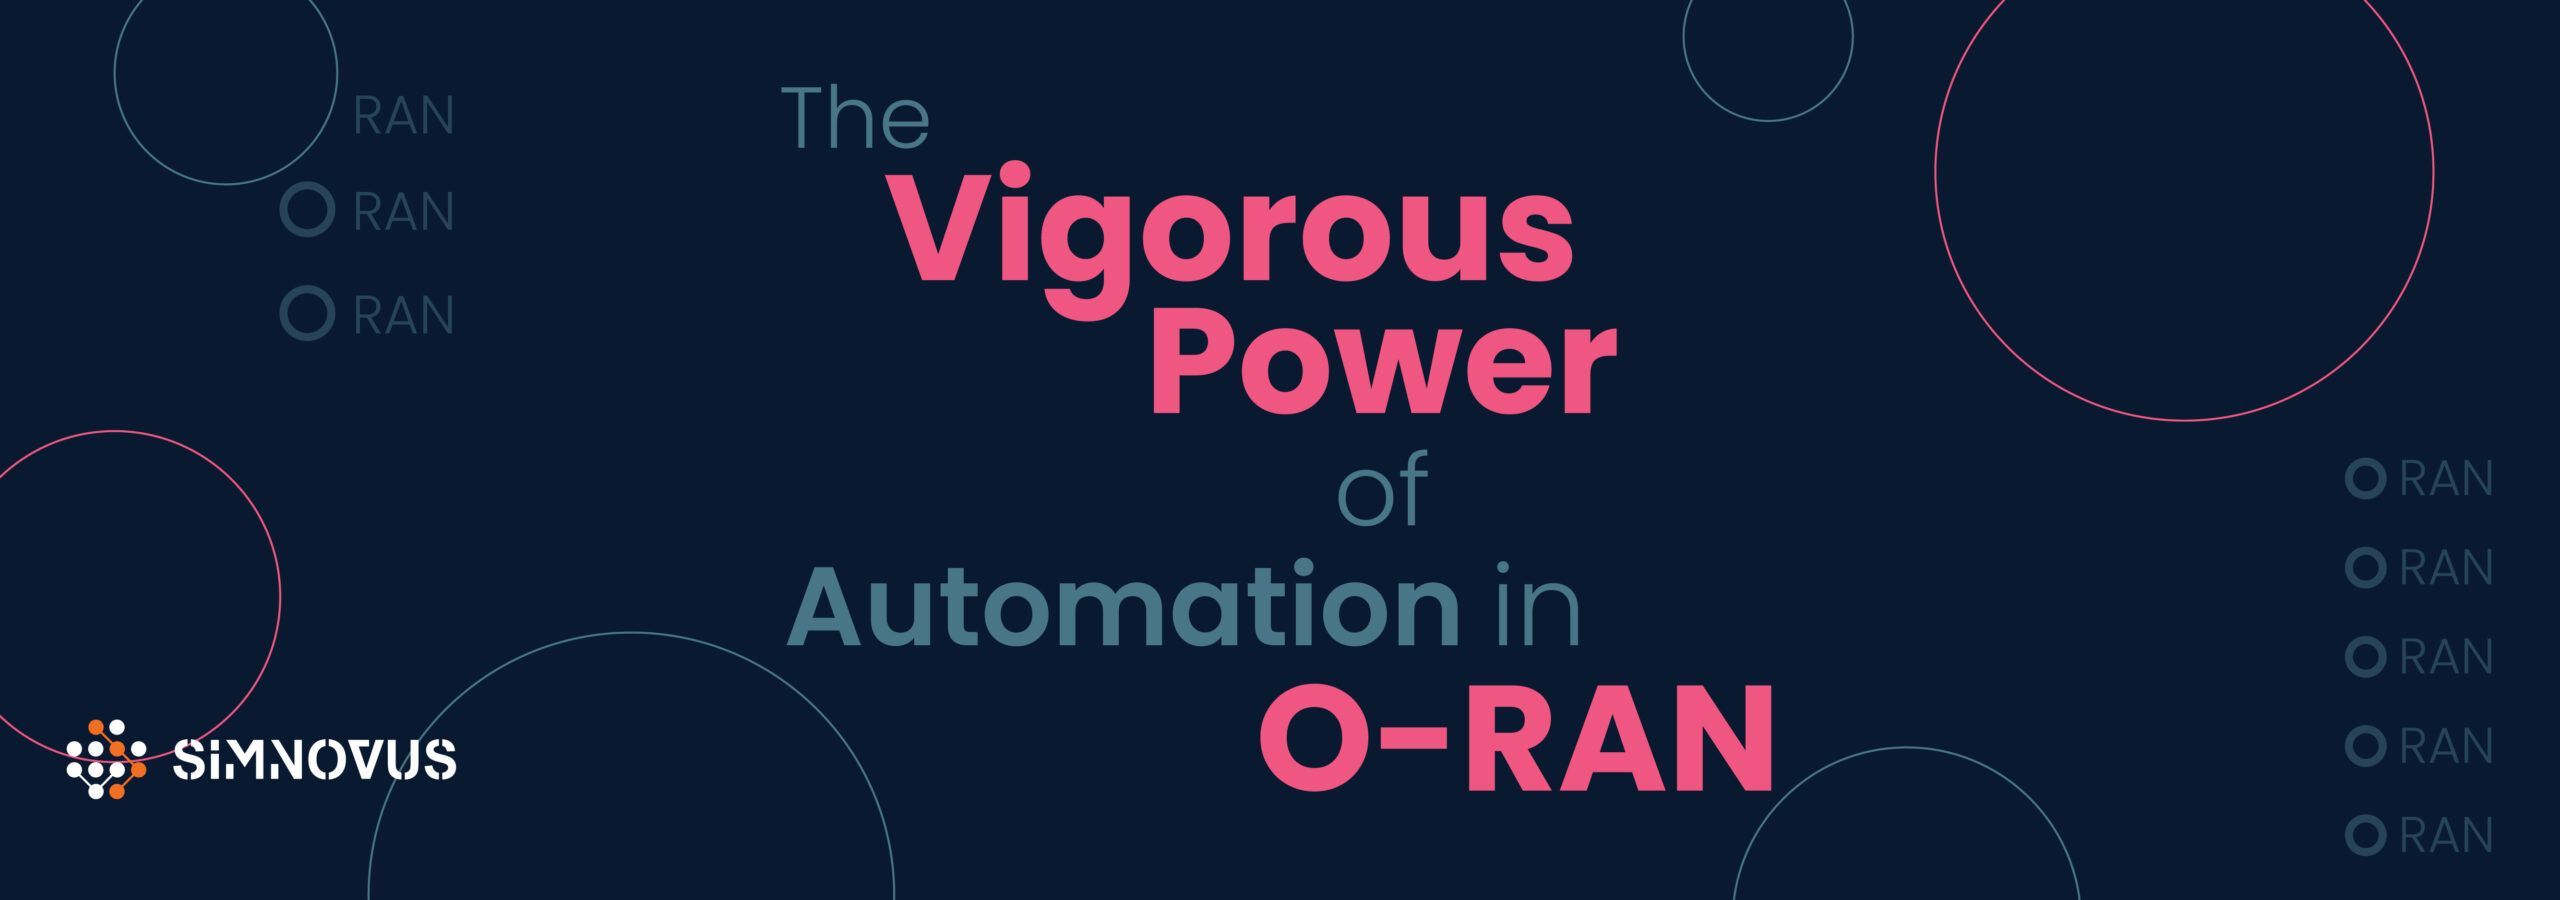 power-of-automation-in-the-open-ran